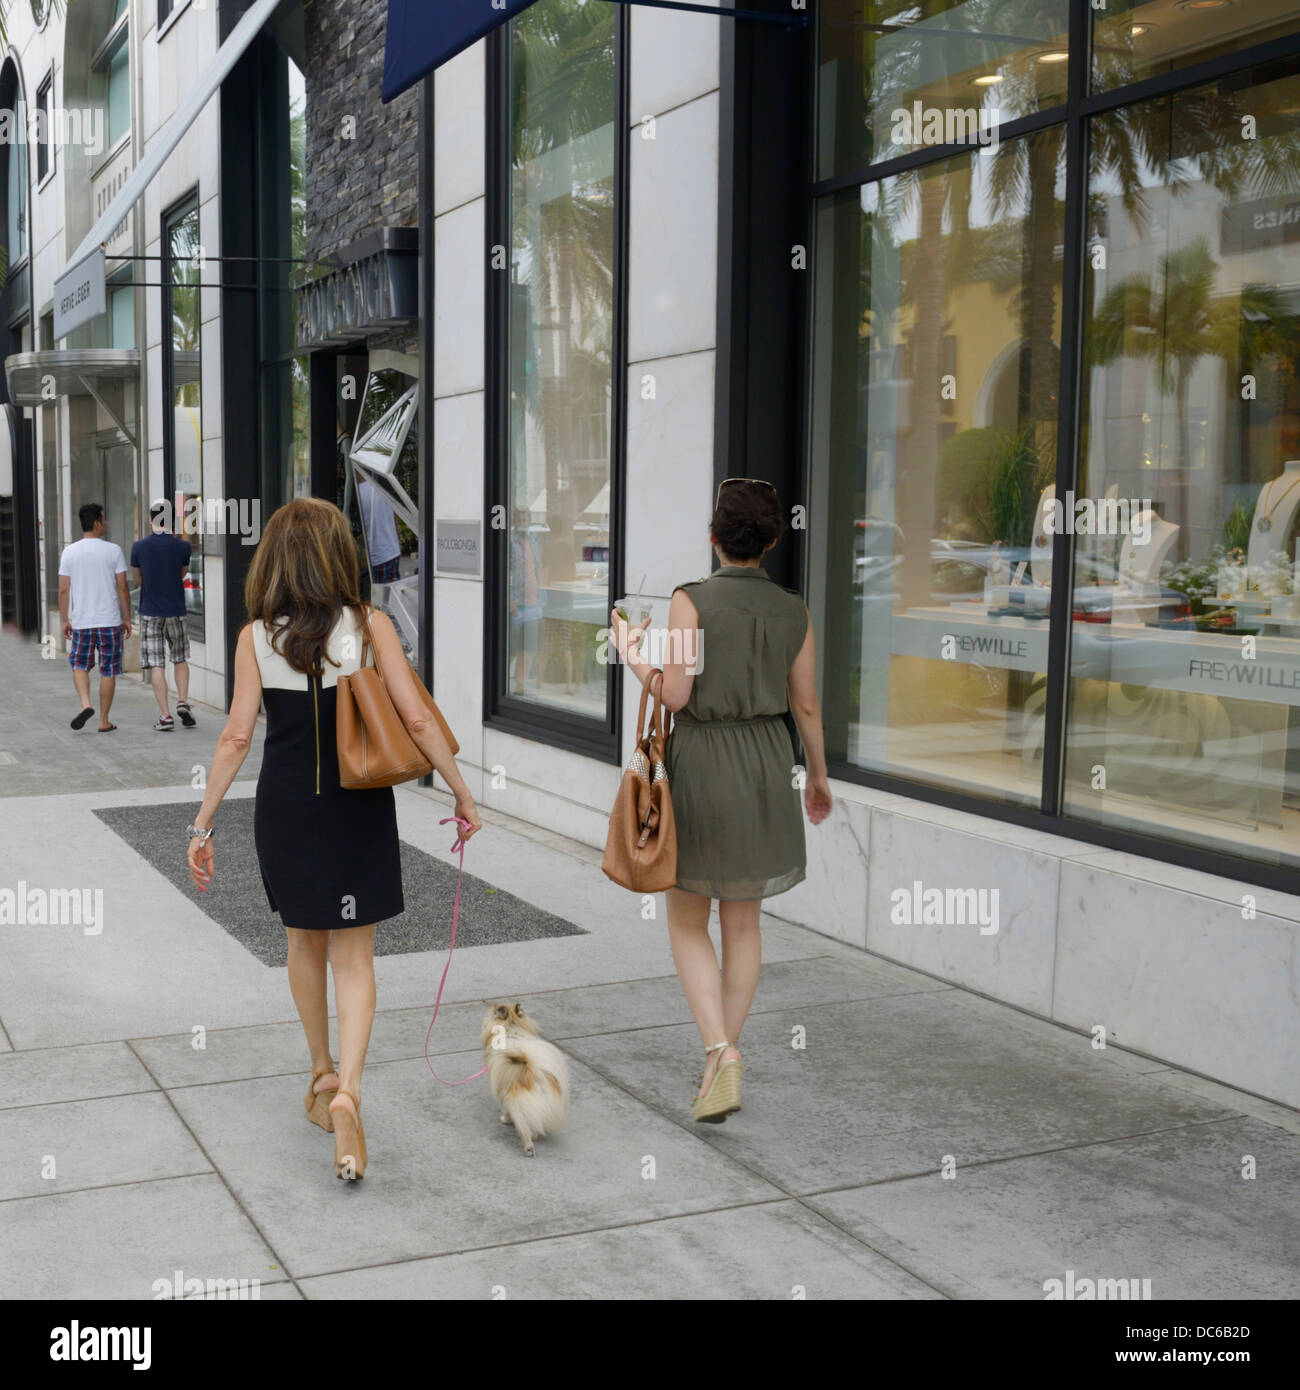 Women and their pet shopping, Rodeo Drive, Beverly Hills, CA Stock Photo